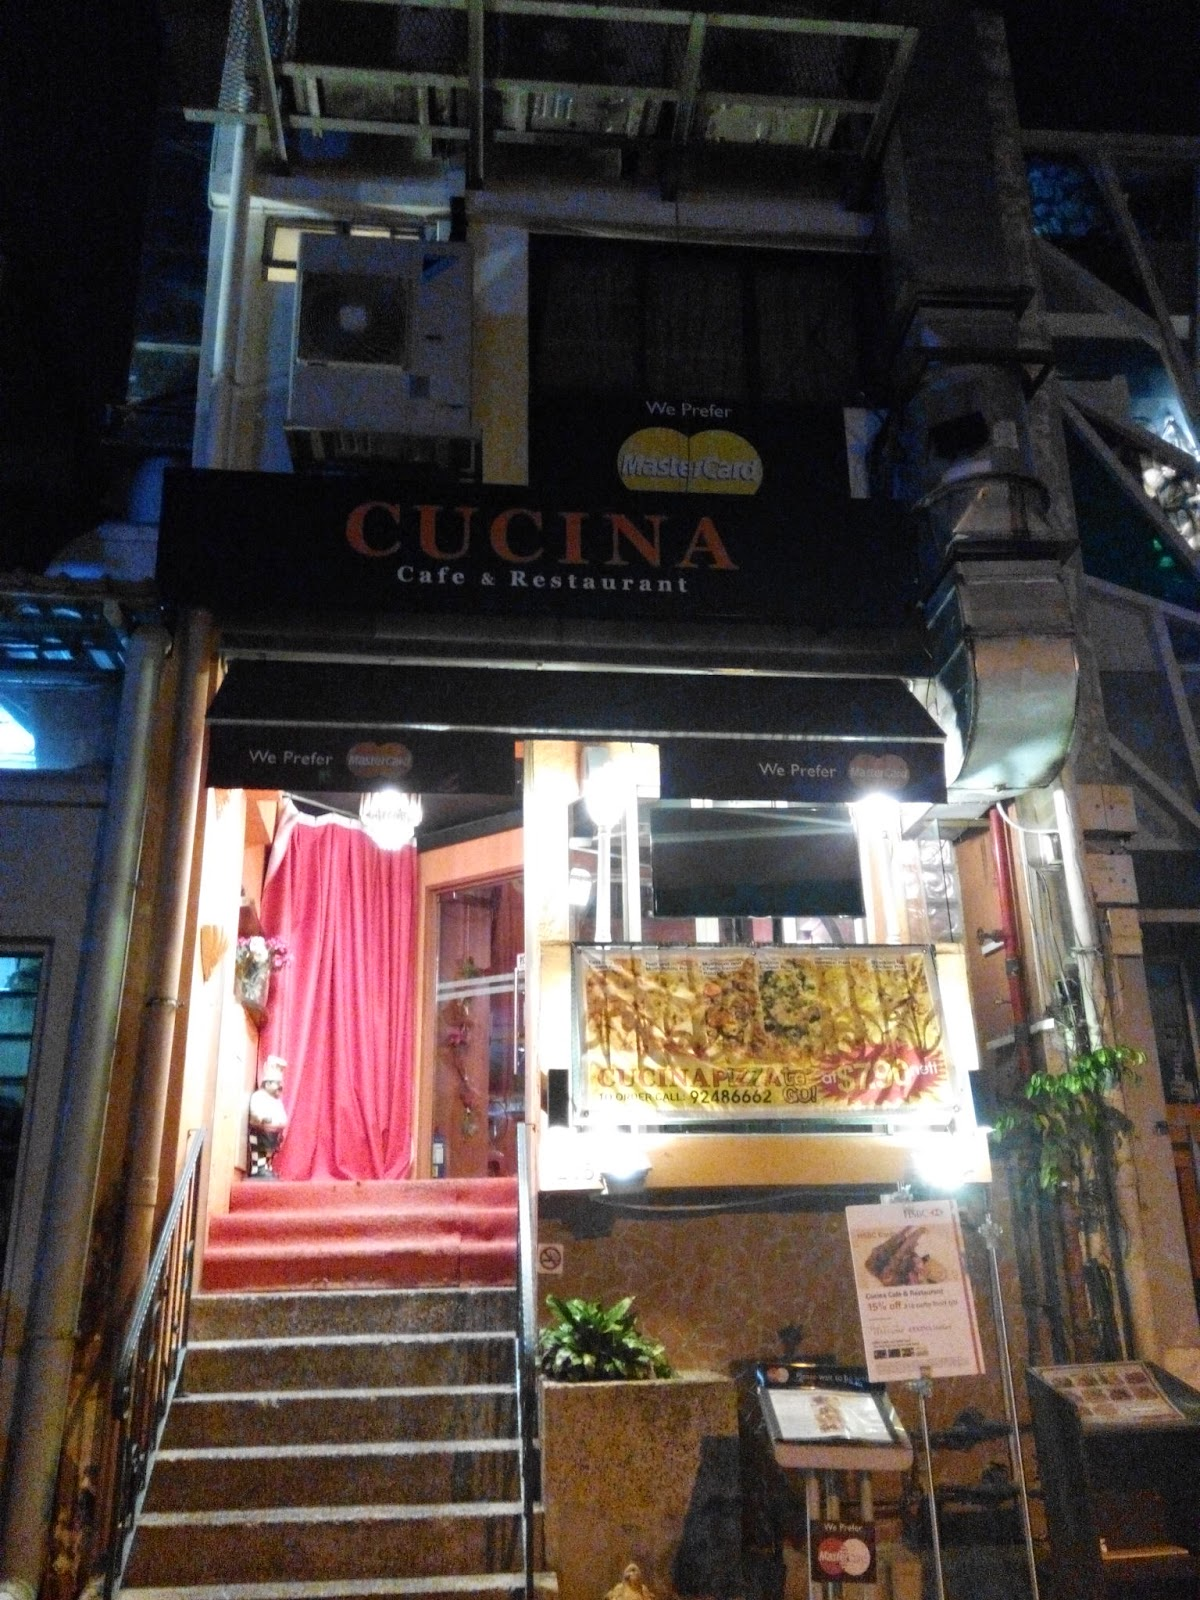 Cucina cafe and restaurant, Holland Village, Singapore